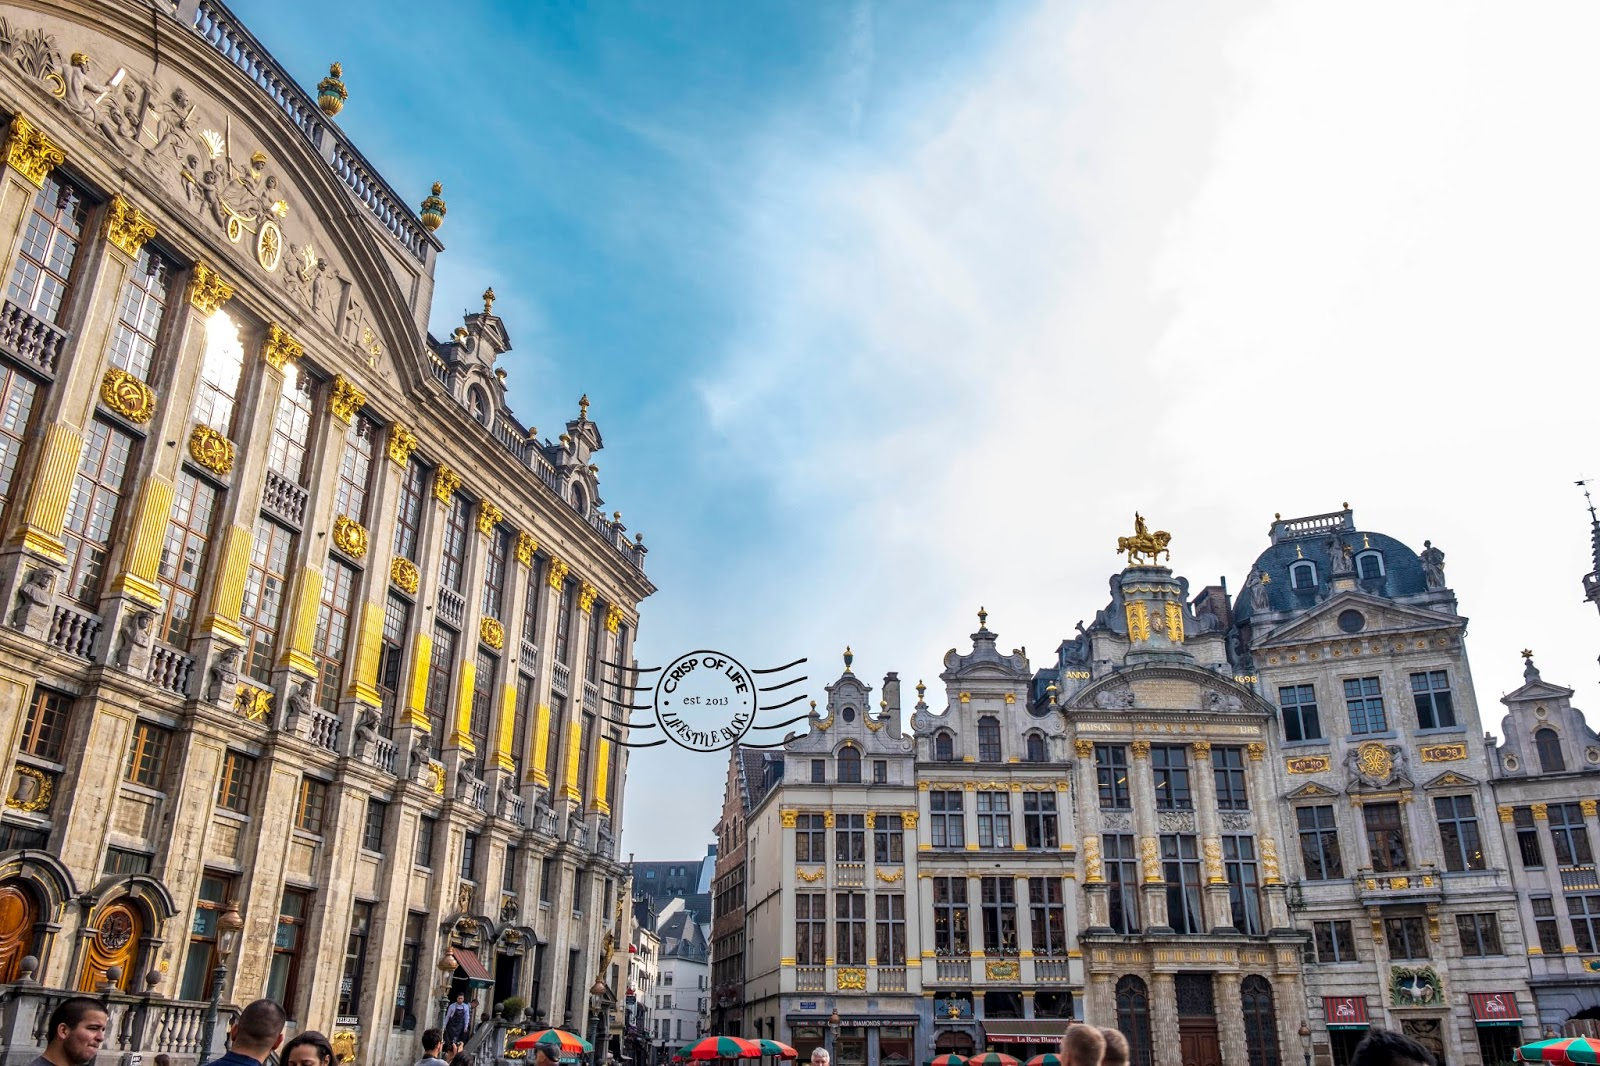 2 Days in Brussels - Things To Do and What to Eat